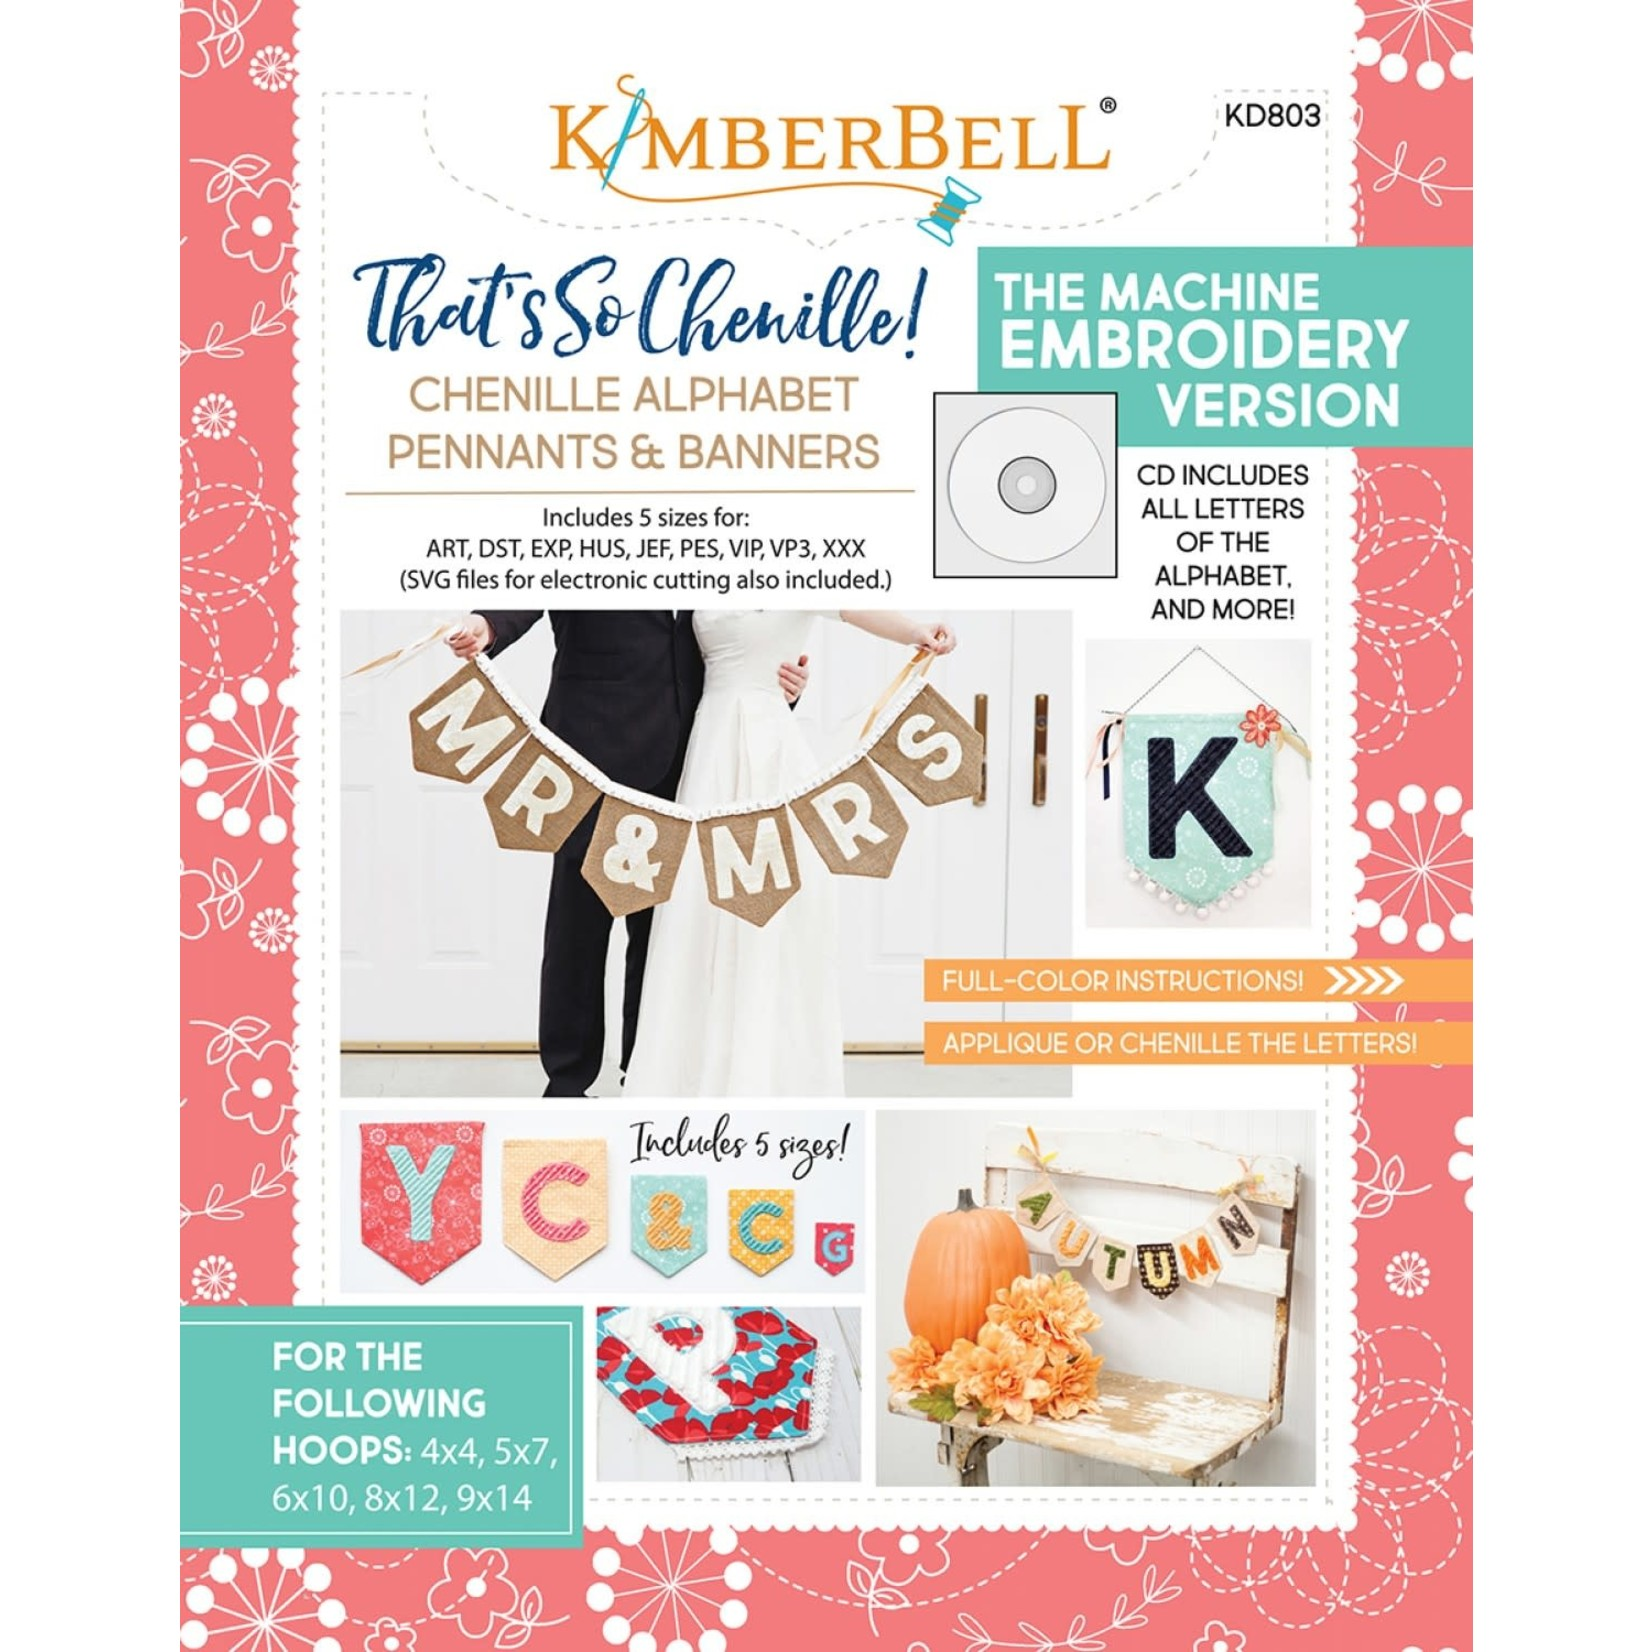 KIMBERBELL DESIGNS That's Sew Chenille: Alphabet Pennants & Banners Book & Machine Embroidery CD